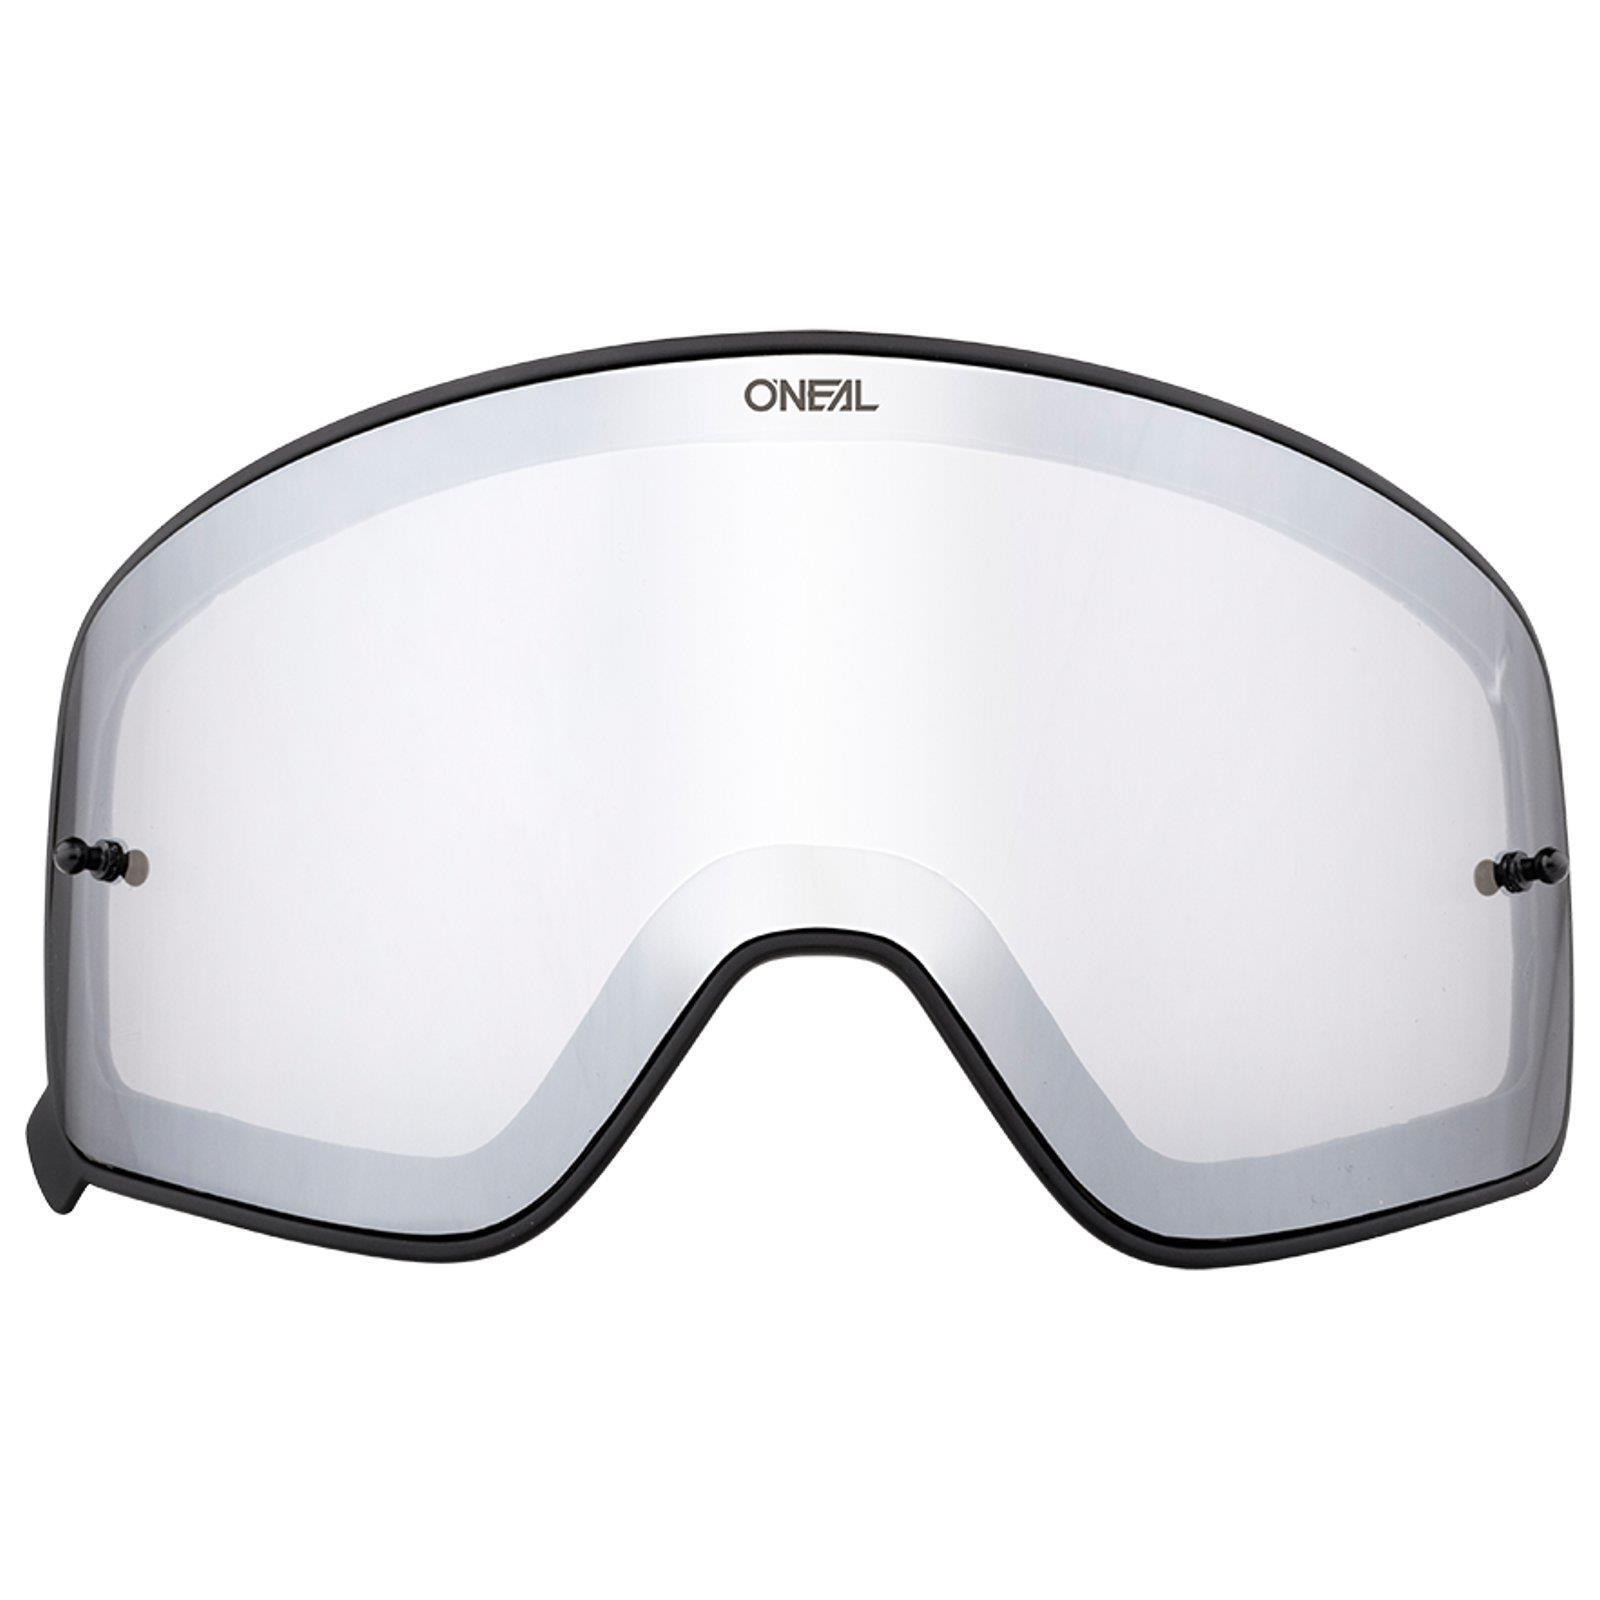 ONeal B-50 Goggle Force Moto Cross Brille Verspiegelt Verspiegelt Verspiegelt Klar +Ersatz Scheibe MTB 4ac85f